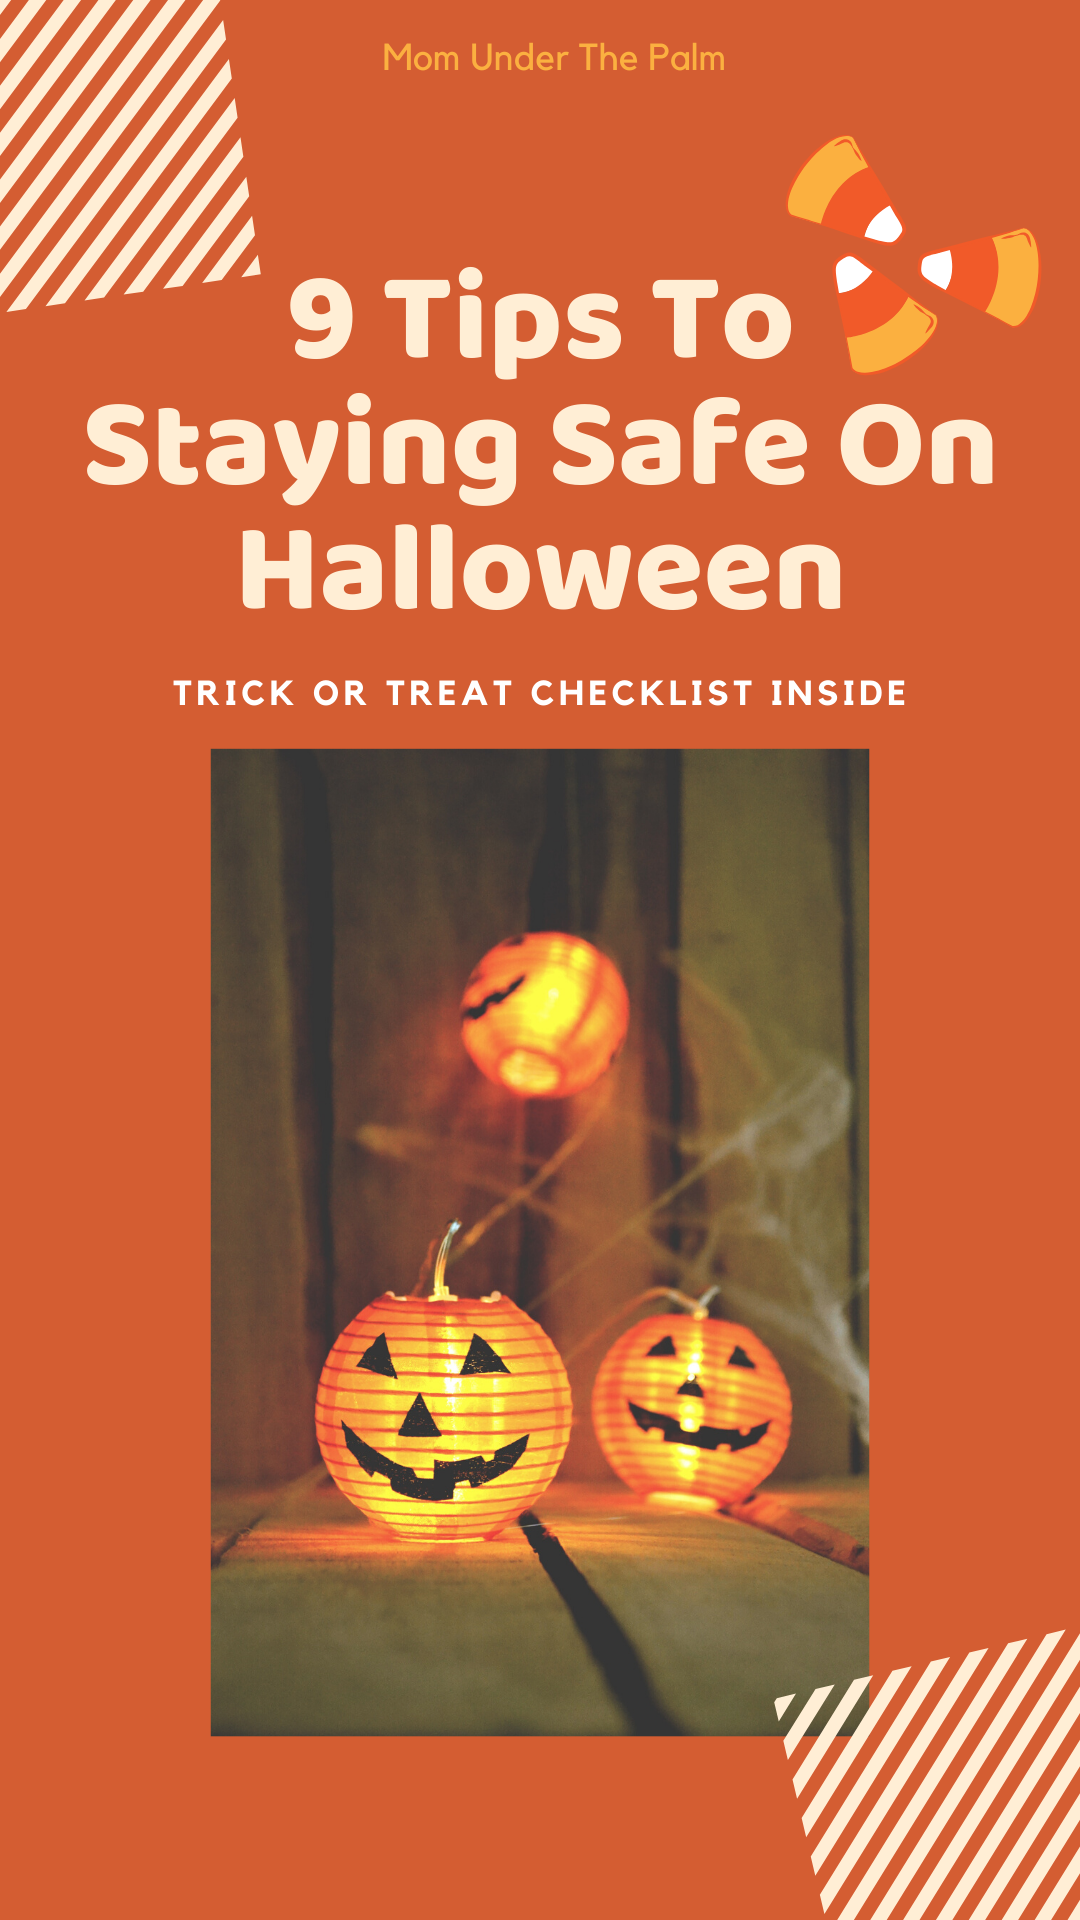 9 Tips To Staying Safe On Halloween